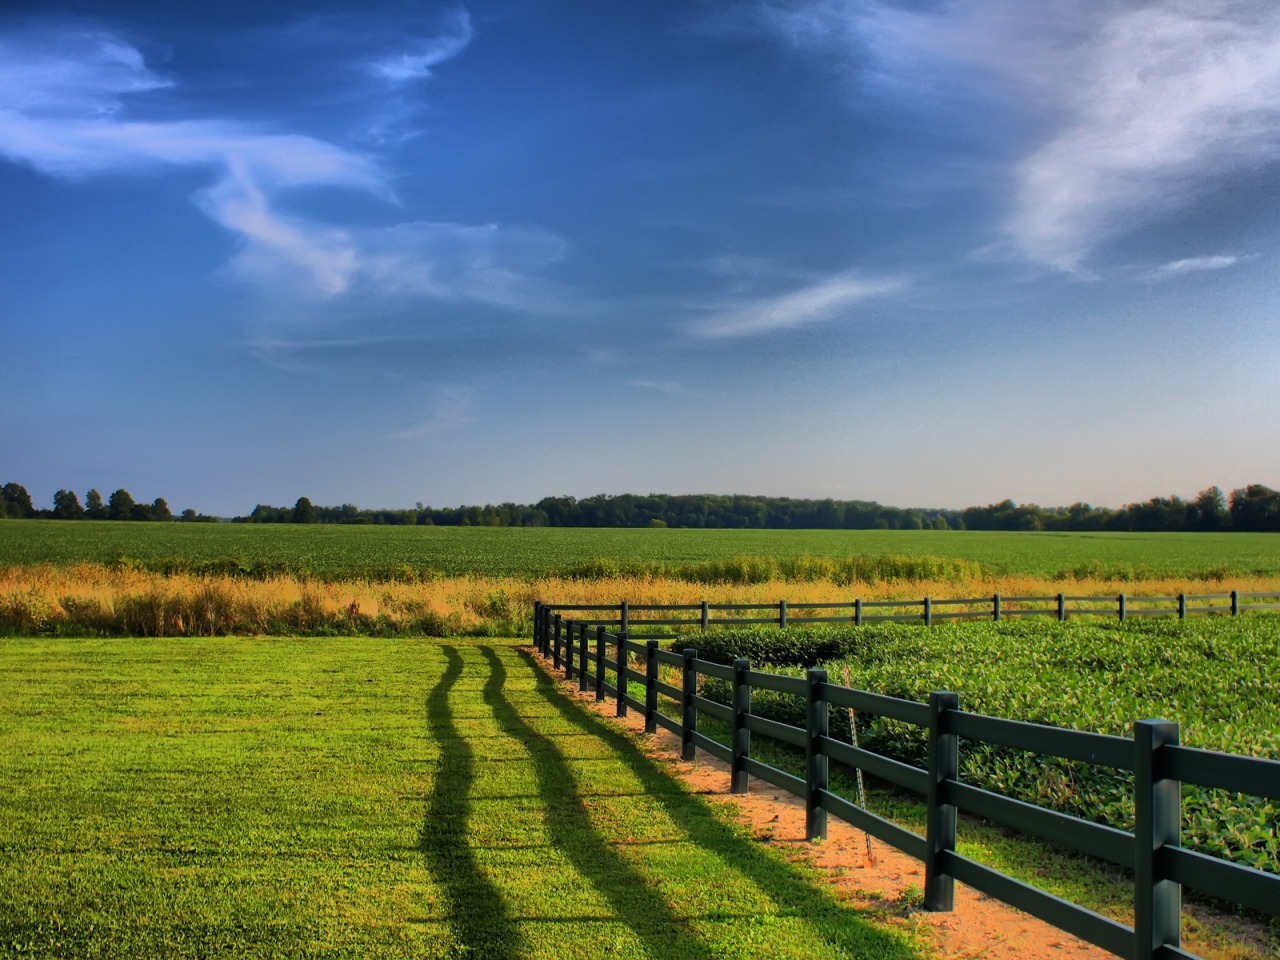 Fence Nature